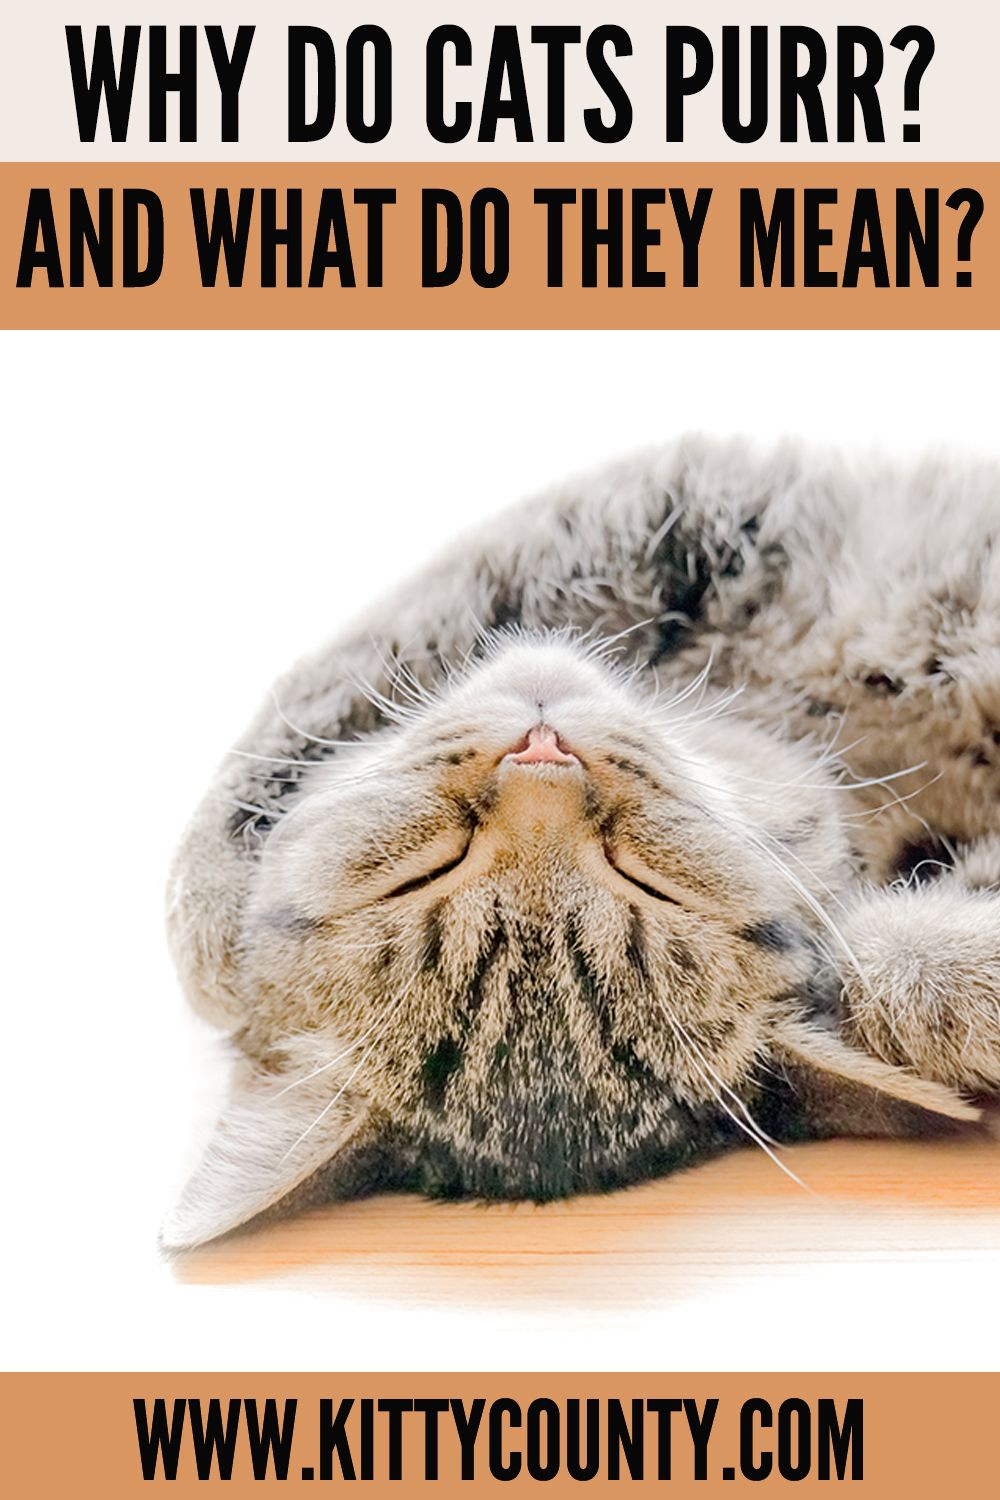 Why Does A Cat Purr The Reasons May Surprise You Kitty County In 2020 Why Do Cats Purr Cat Purr Cats